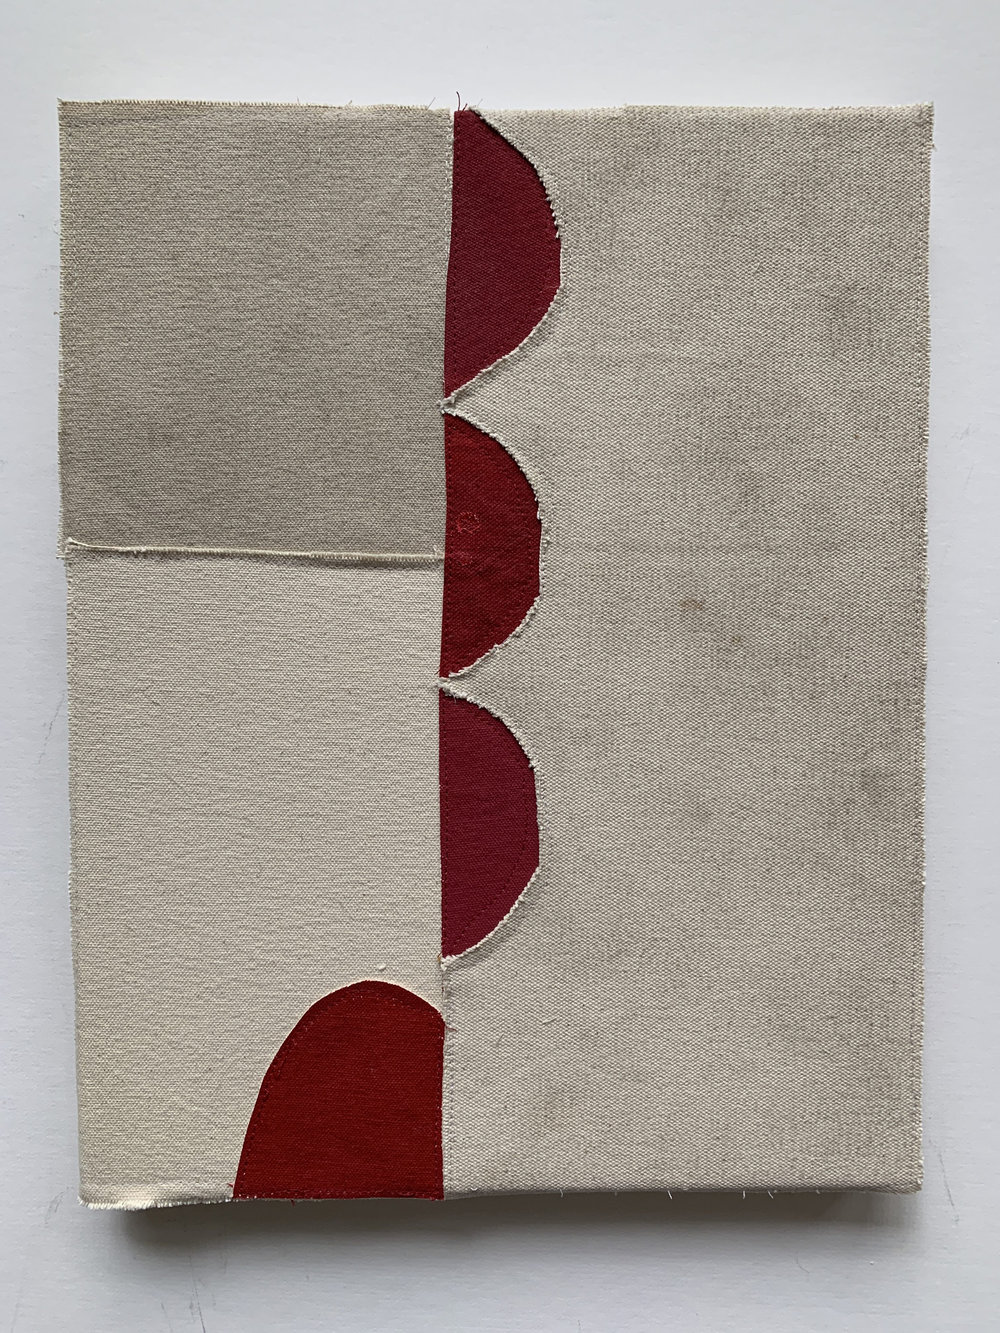 Jonathan Parker SC # , 2019 Acrylic on canvas, sewn 14 x 11 inches